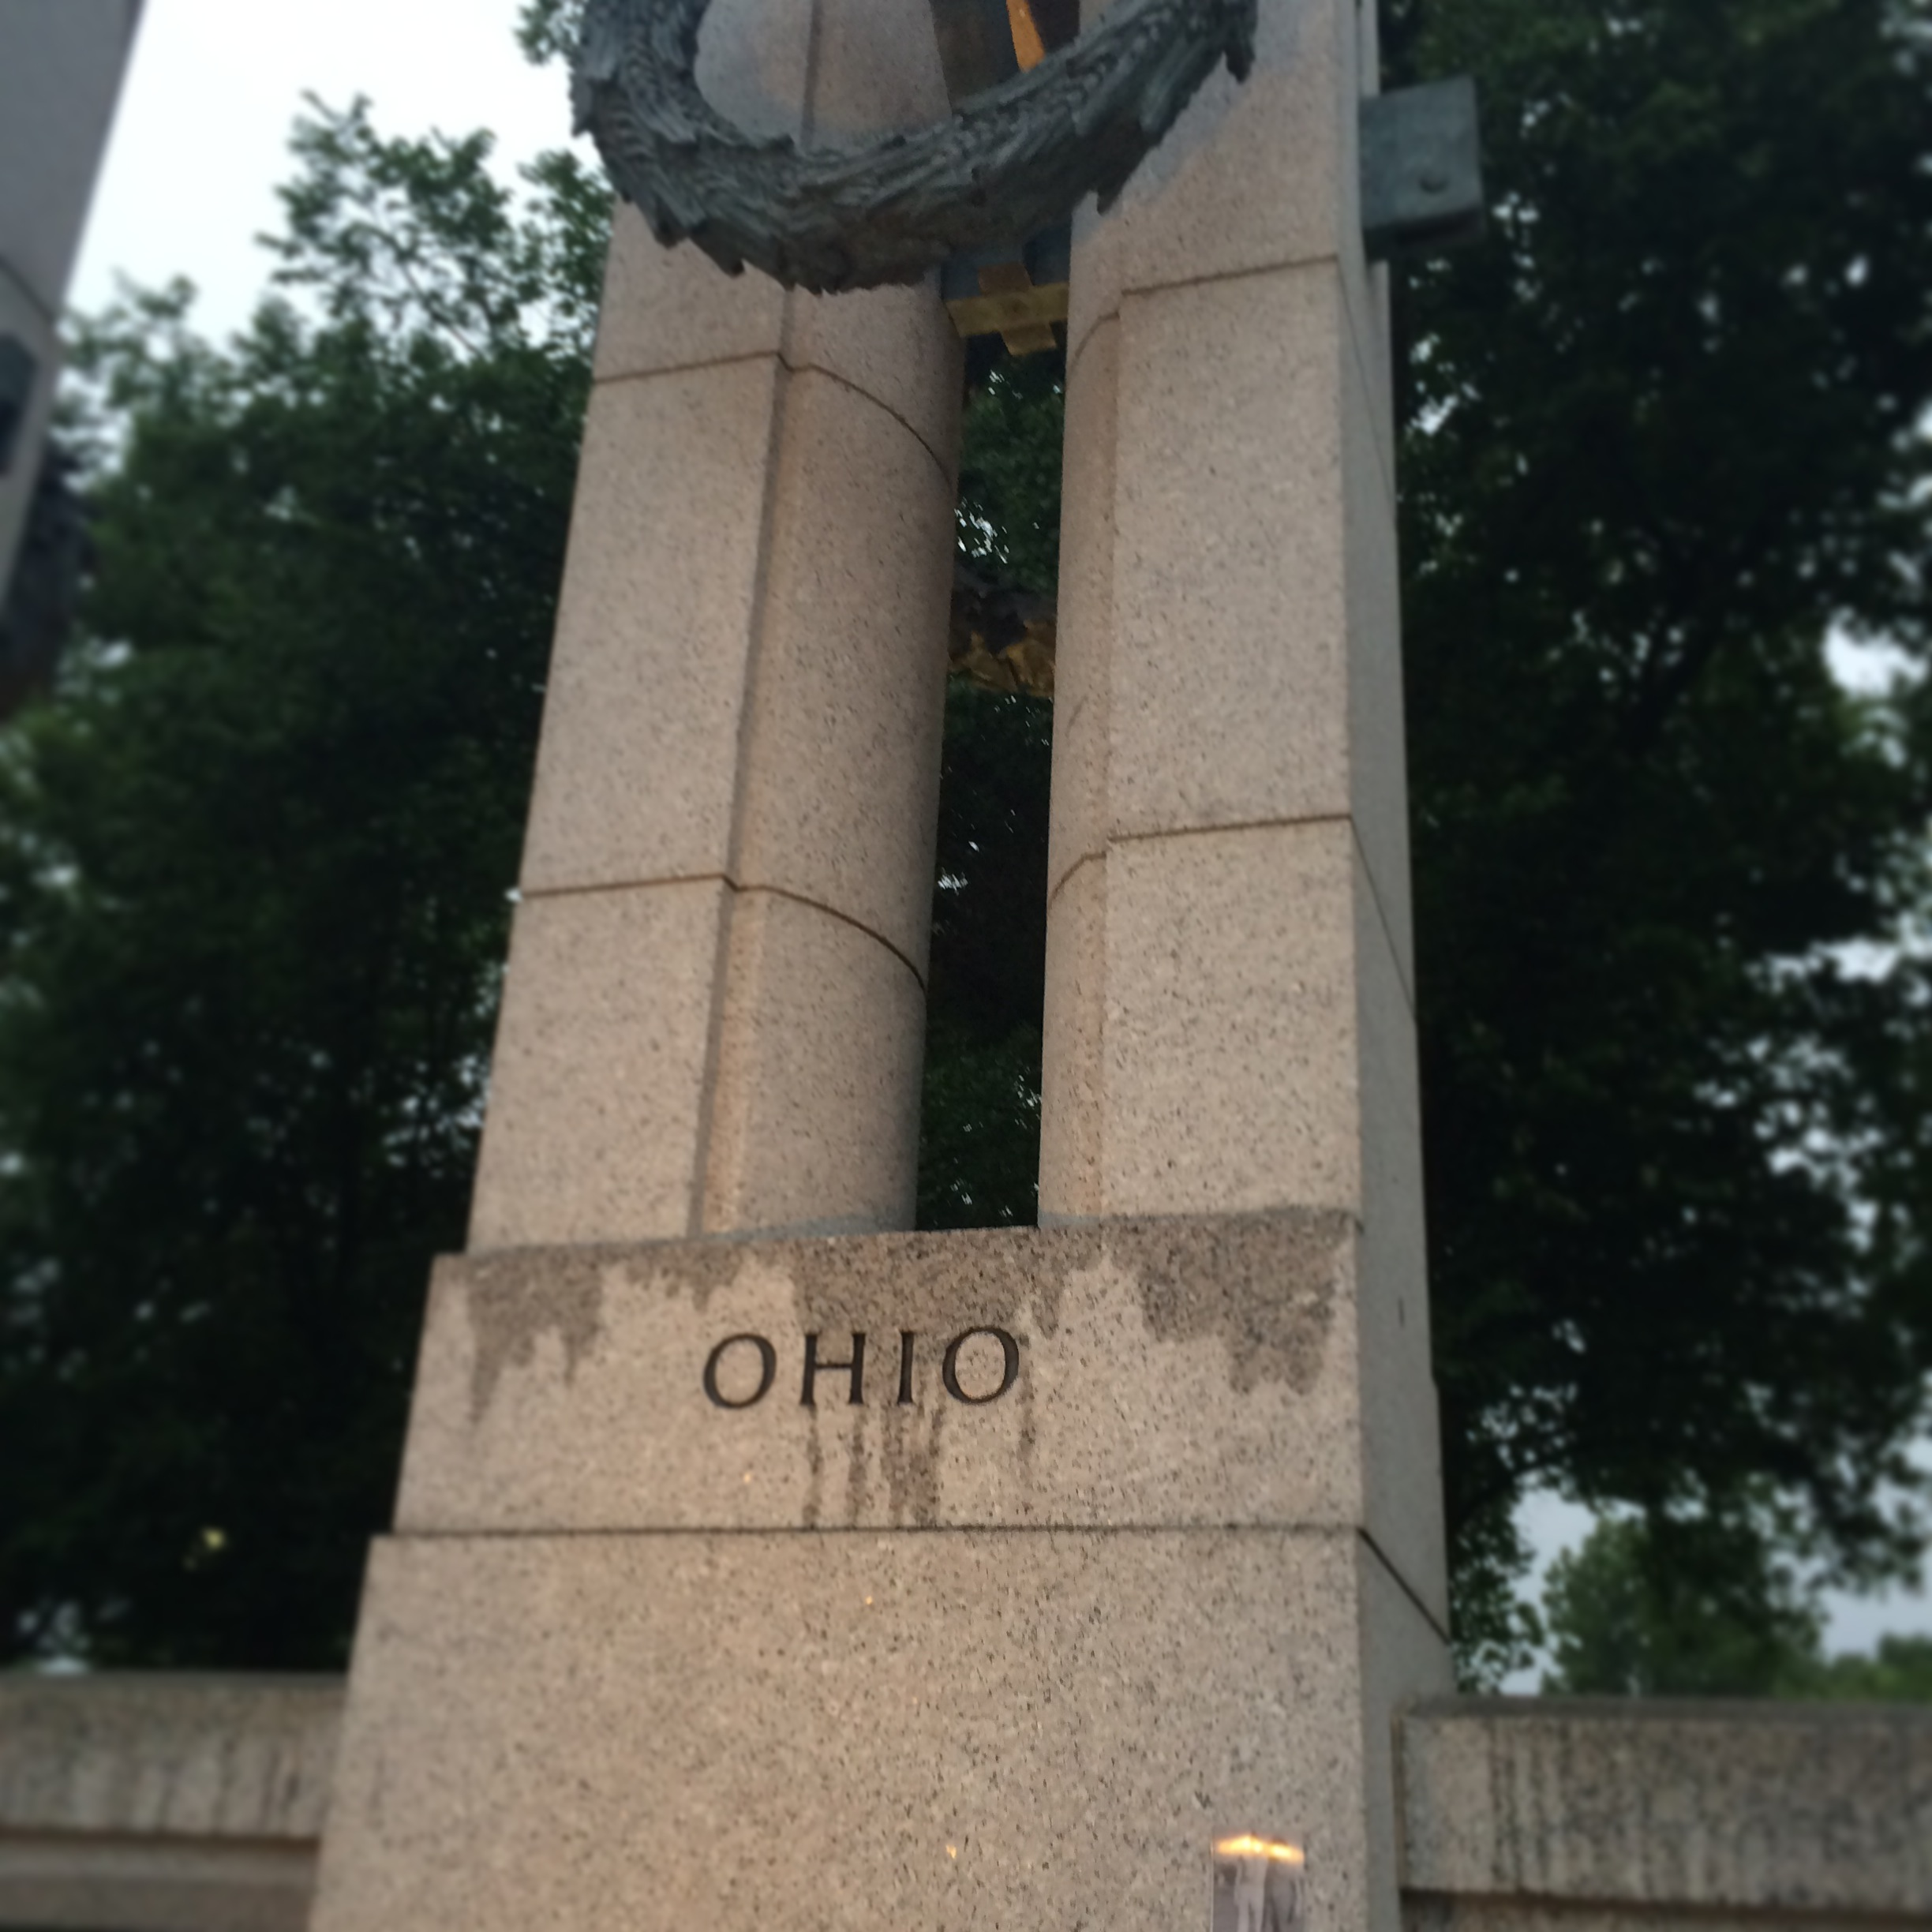 The Ohio pillar of the World War II Memorial. Note the taped photograph at the bottom right of the pillar.